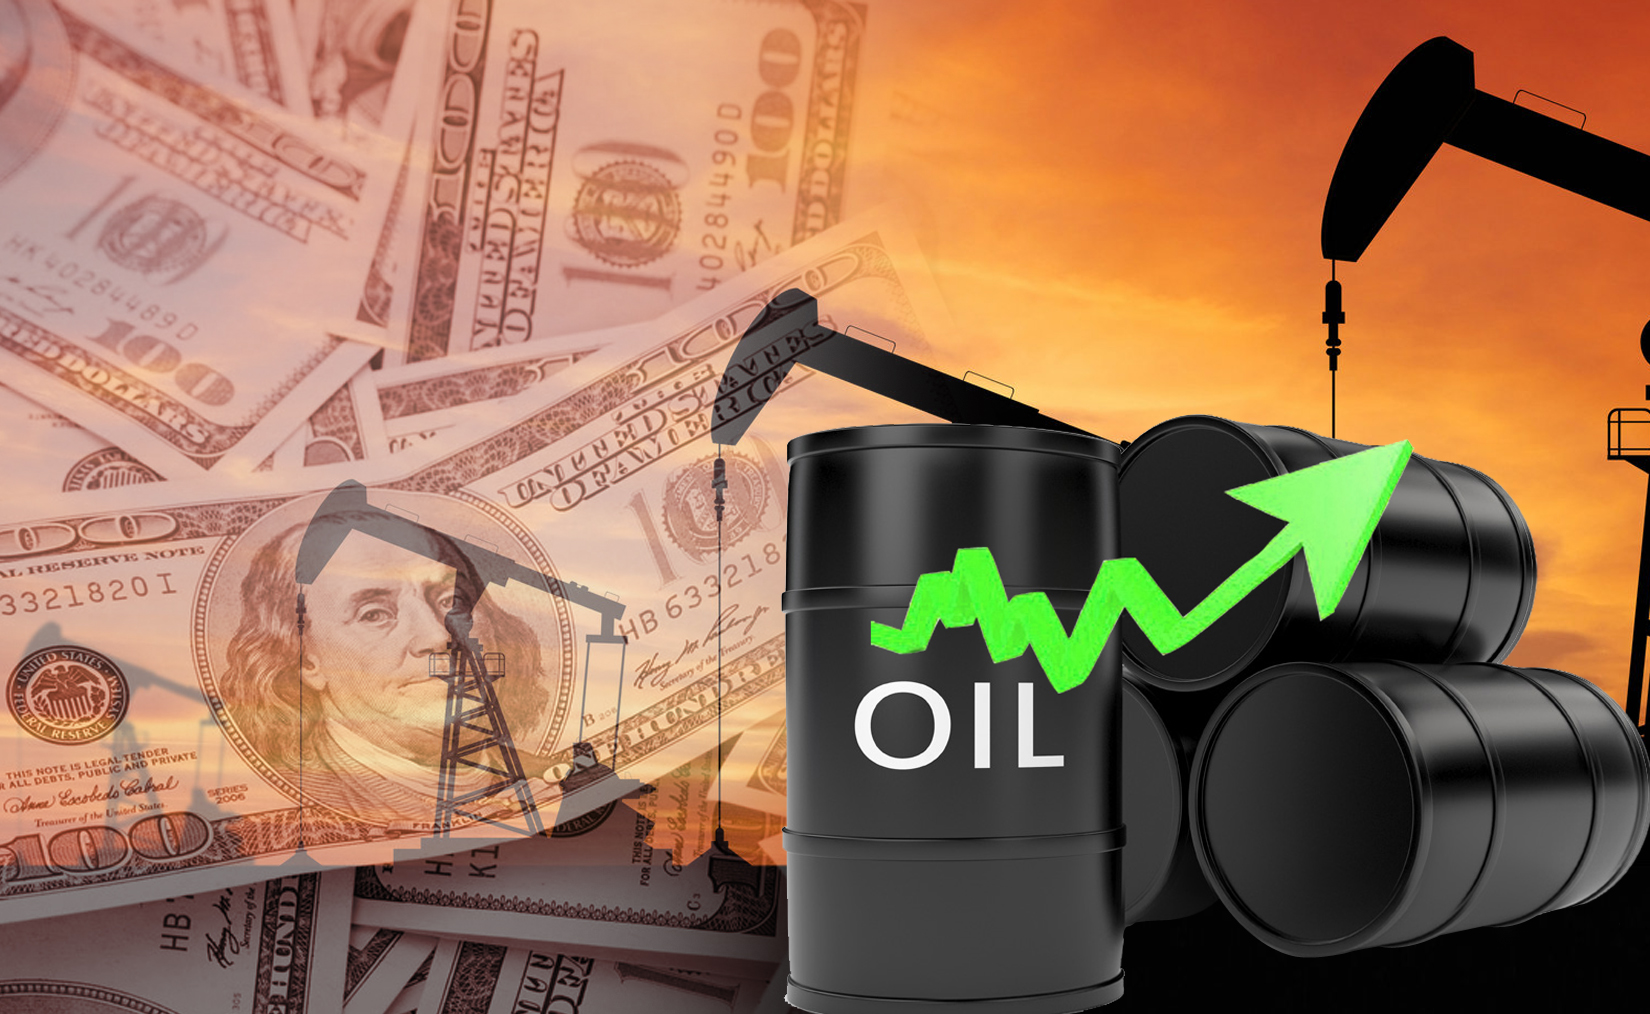 Kuwait oil price up 34 cents, stands at USD 67.55 bp